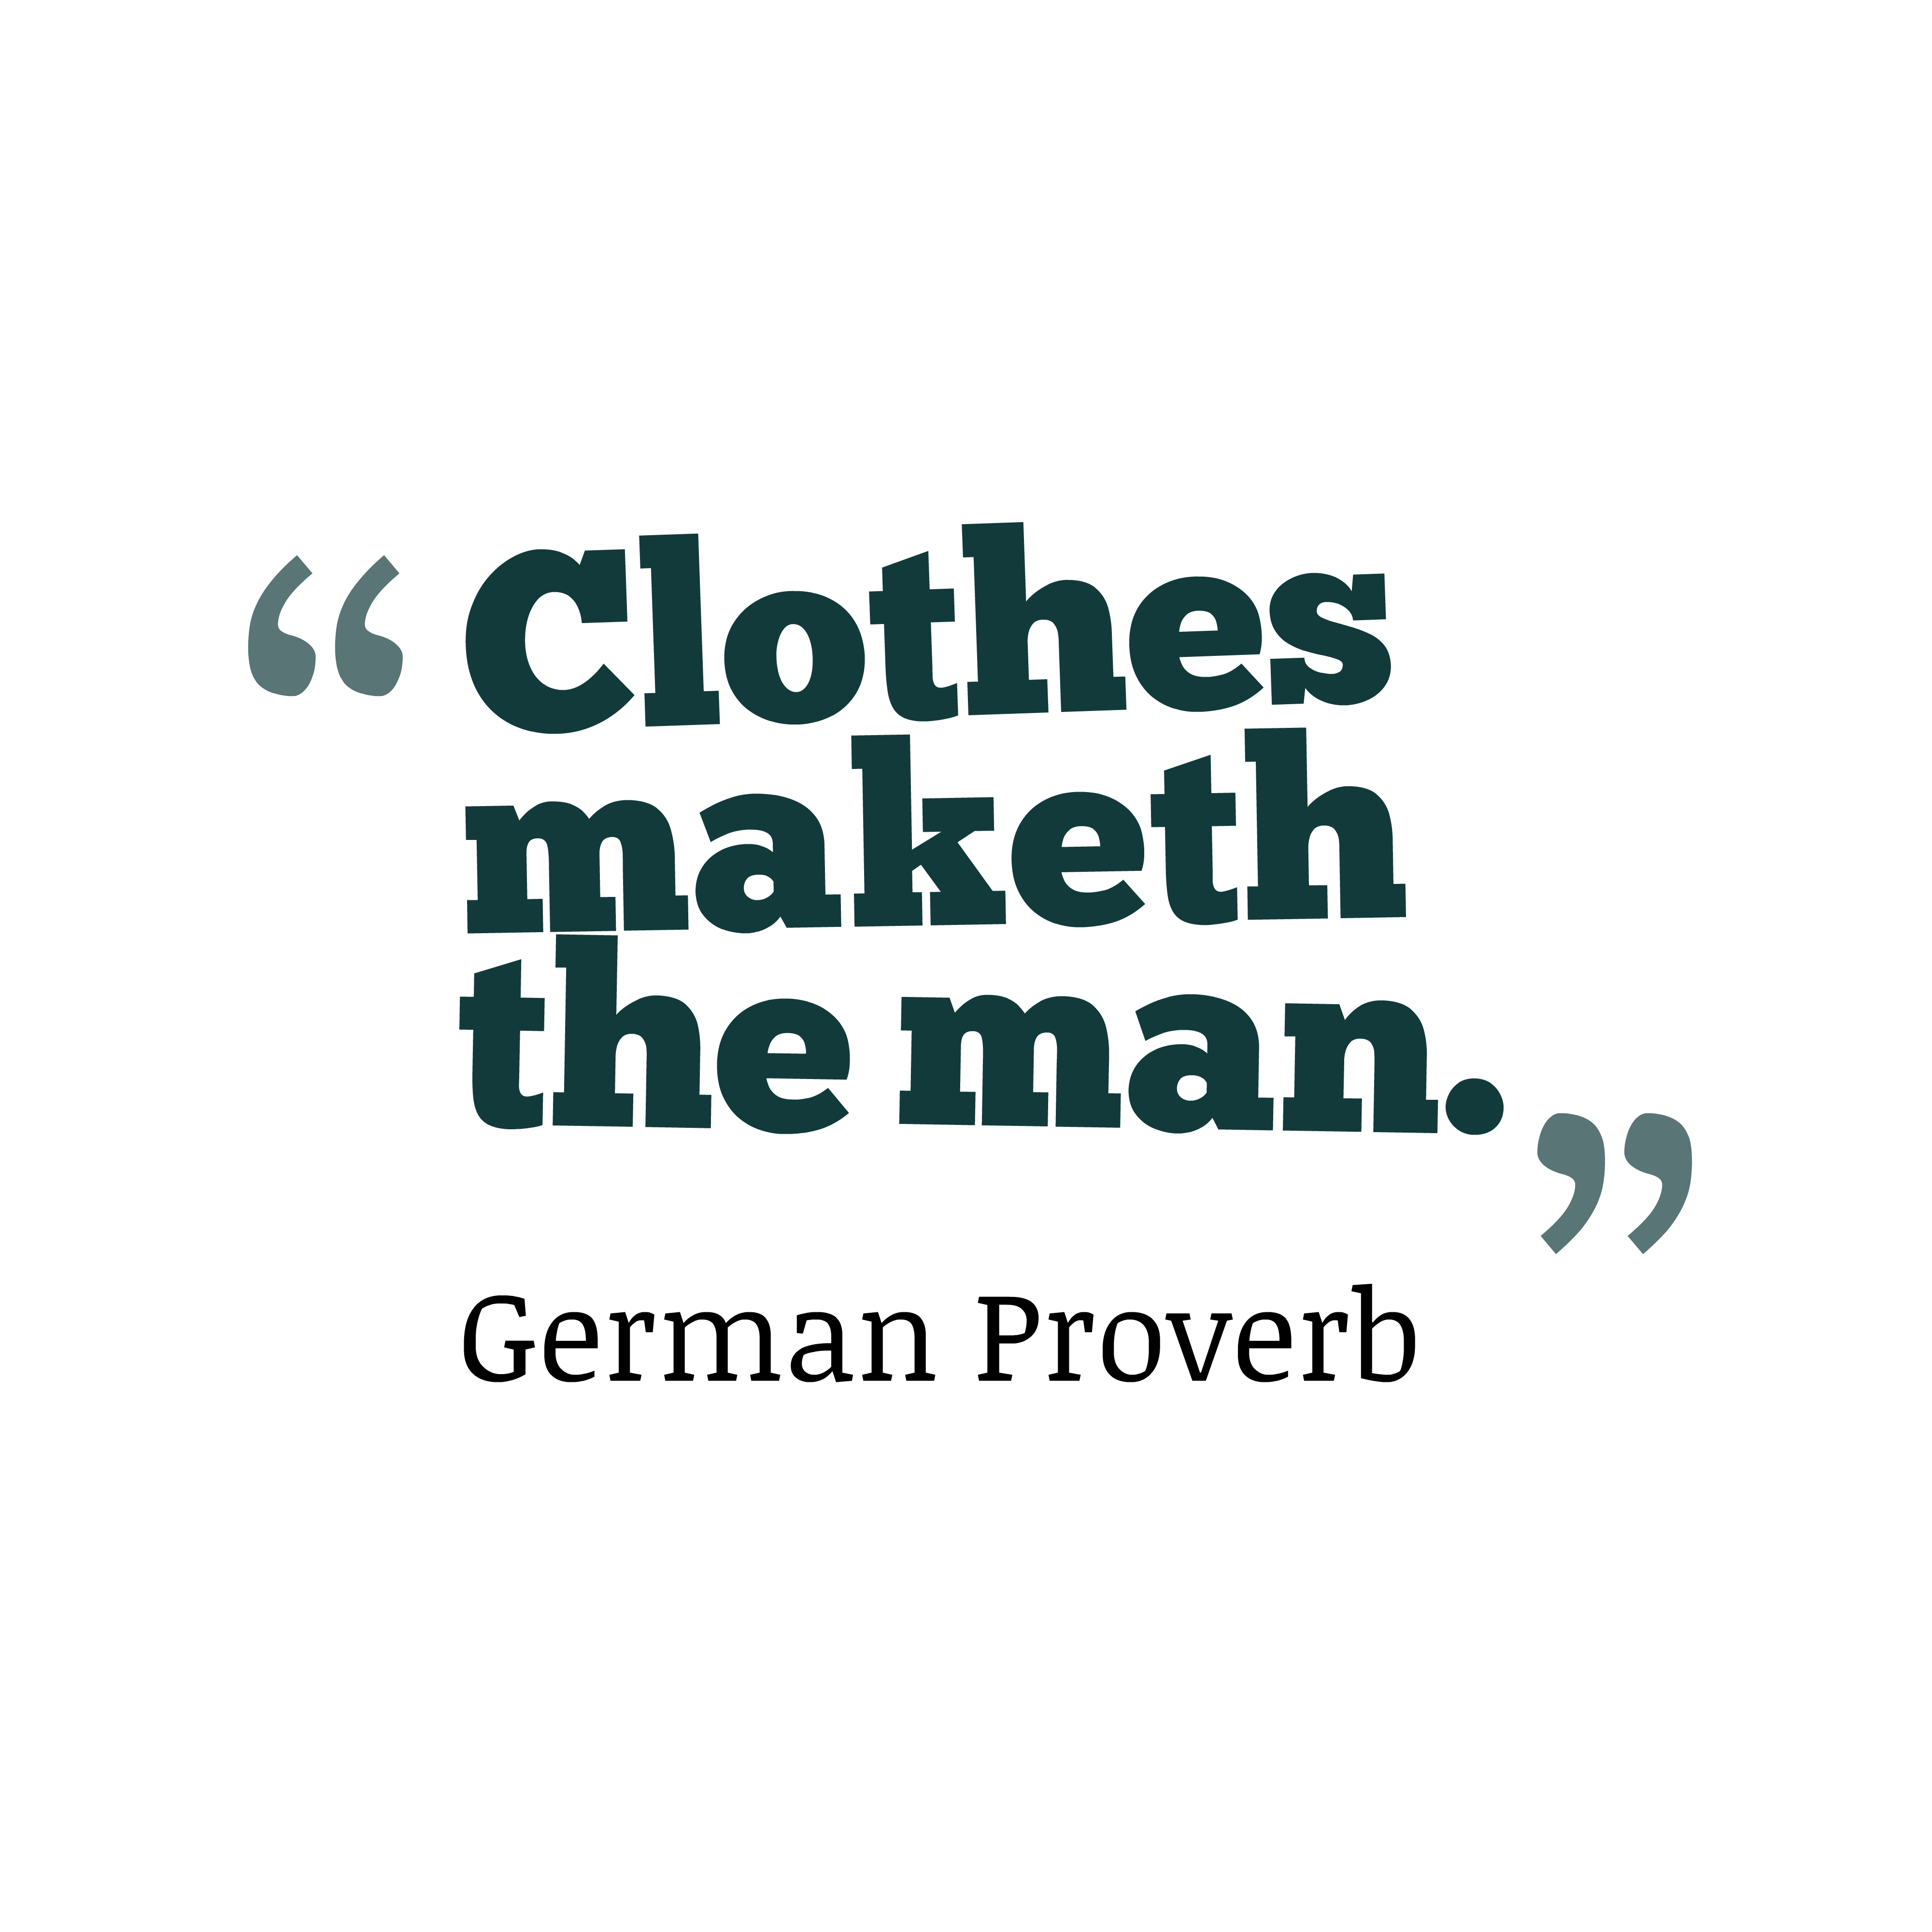 Quotes image of Clothes maketh the man.